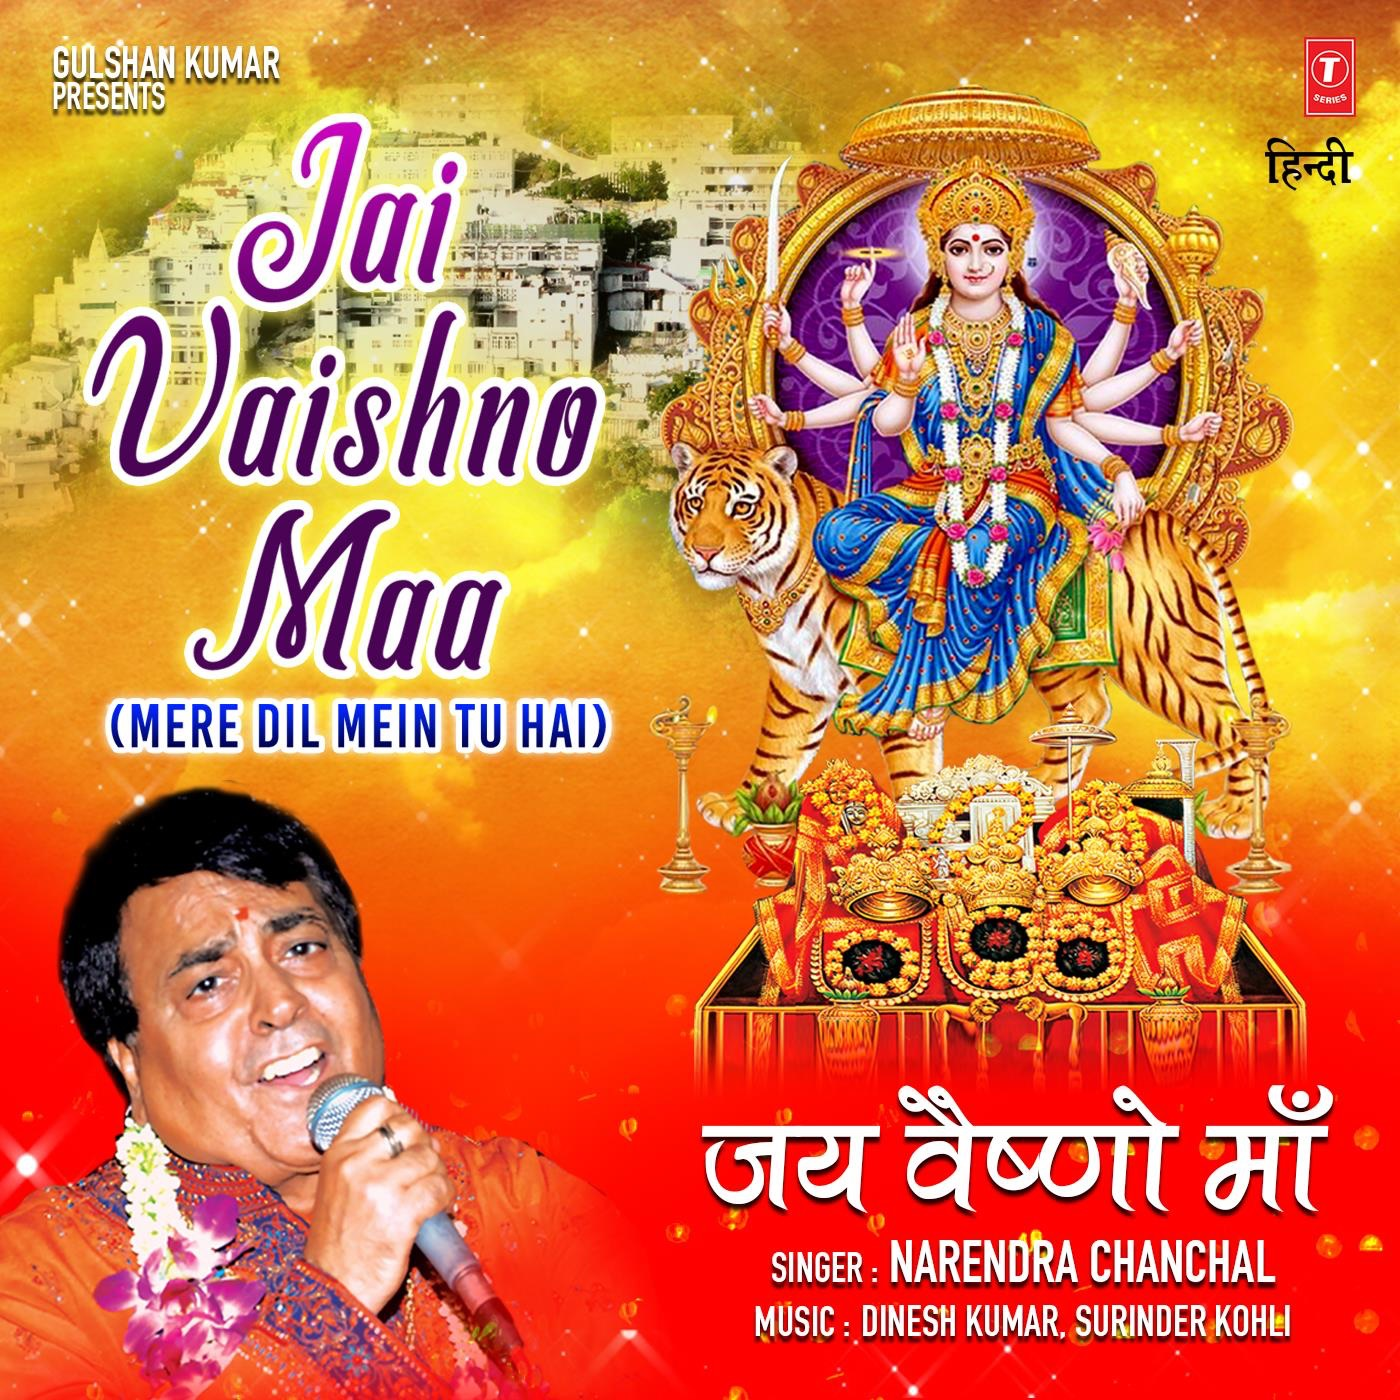 MP3 Songs Online:♫ Subah Savere Ghar Se - Narendra Chanchal album Jai Vaishno Maa. Devotional & Spiritual,Music,Indian listen to music online free without downloading.